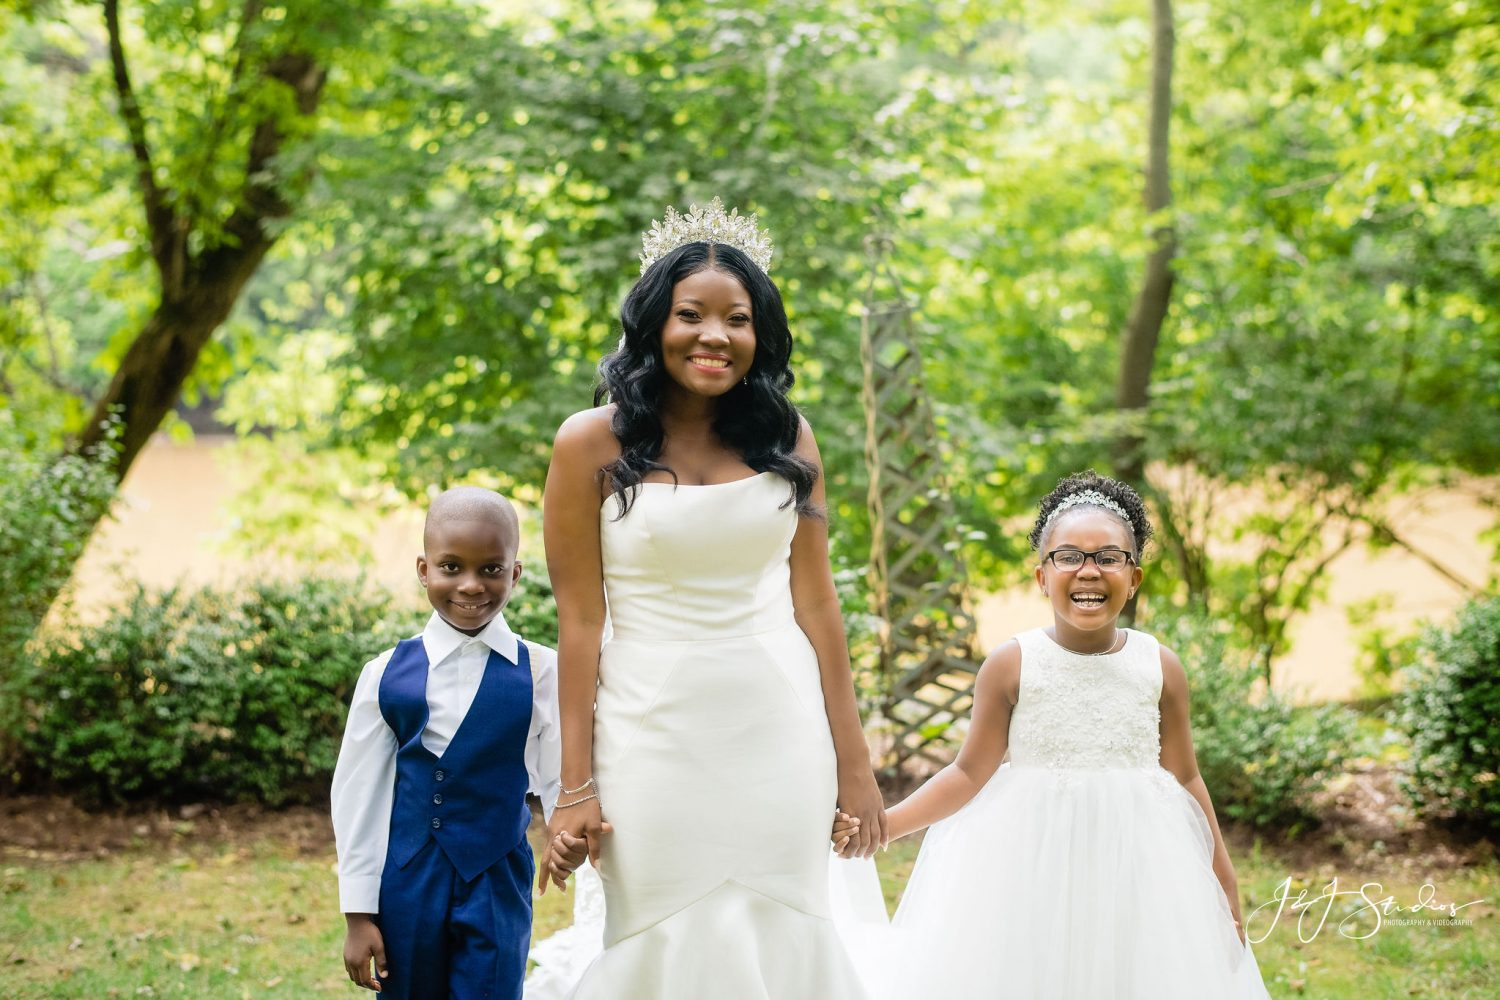 Little ones must have wedding photos